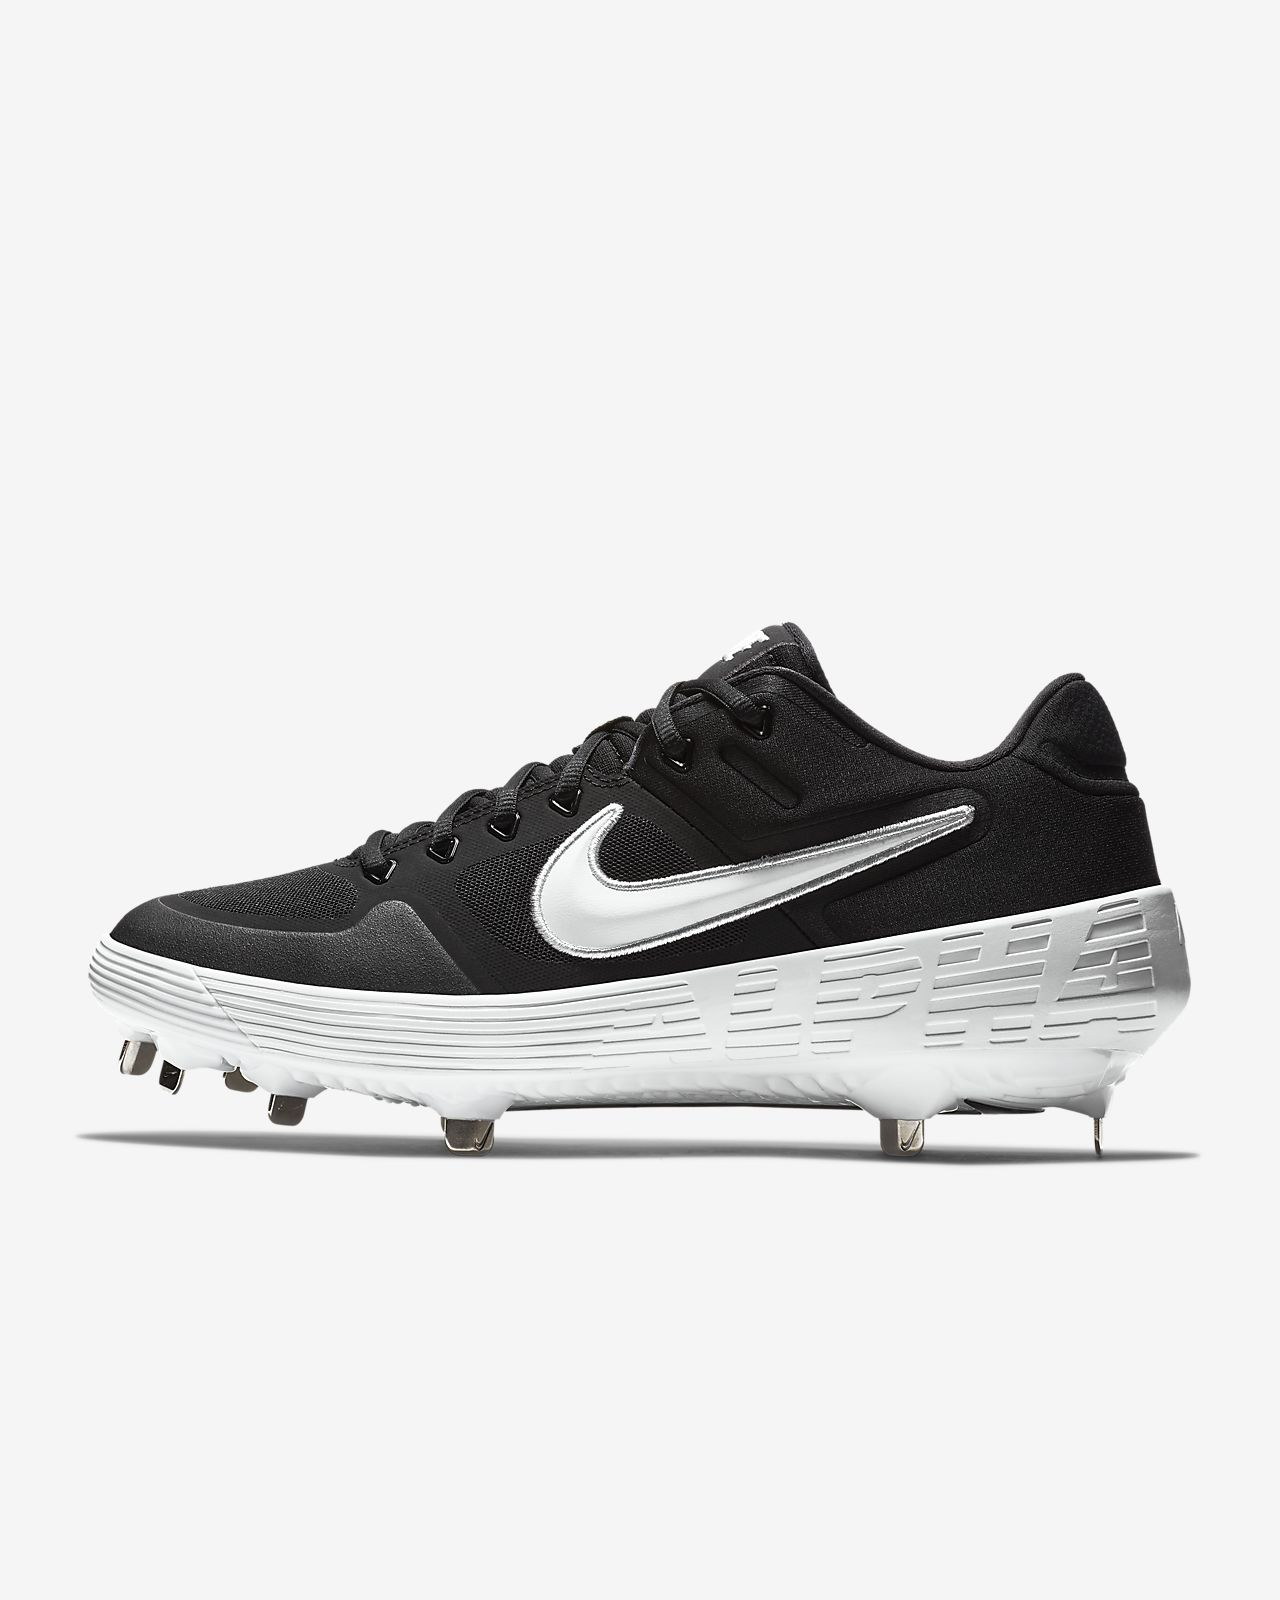 4137dacb4ca Nike Alpha Huarache Elite 2 Low Baseball Cleat. Nike.com